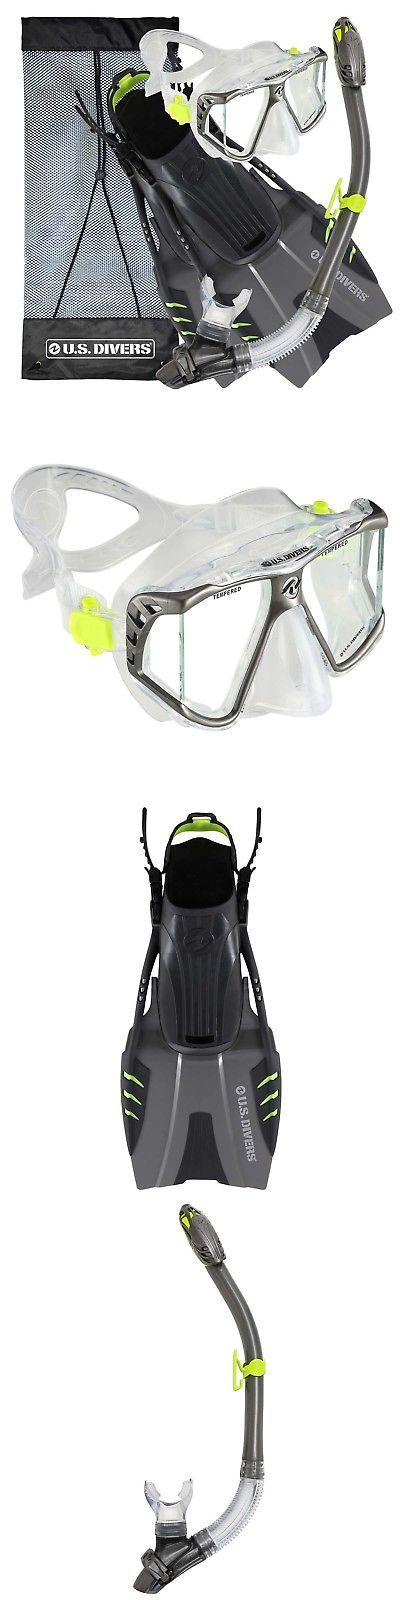 Snorkels and Sets 71162: U.S. Divers Panoramic View Adult Snorkel Set - Gun ... **Sale - Special Price** -> BUY IT NOW ONLY: $51.66 on eBay!